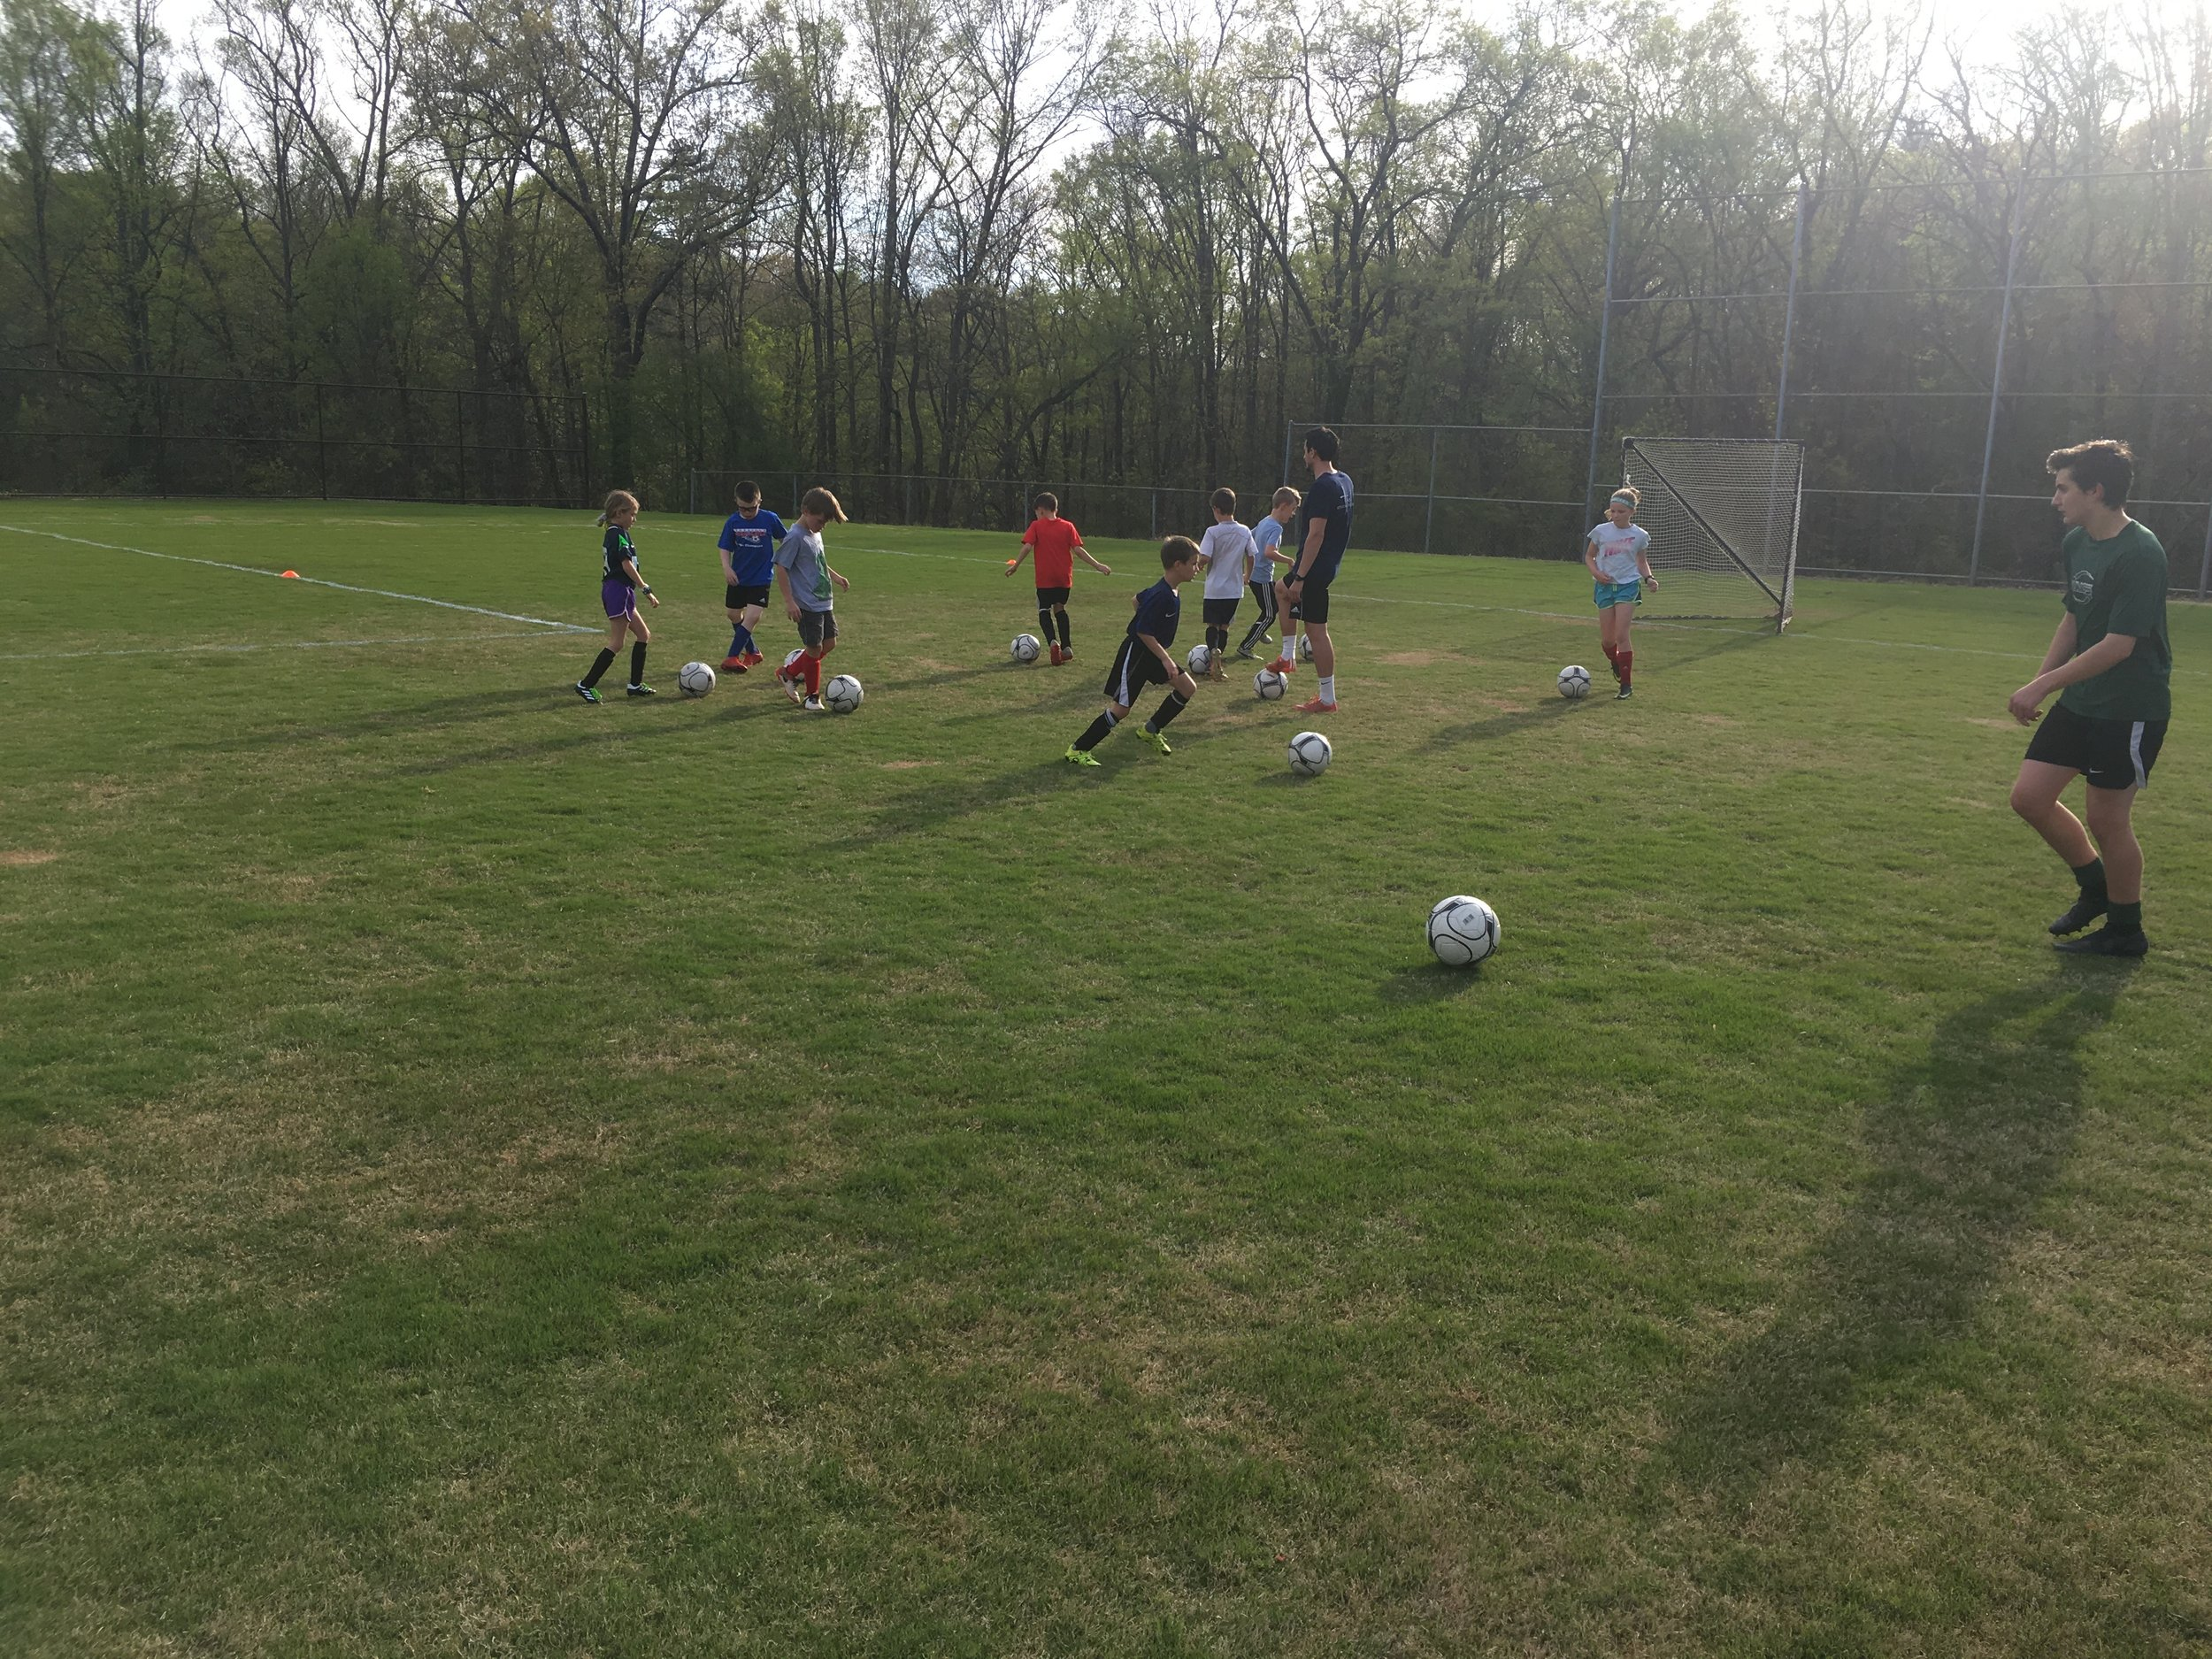 Four Week Program - Sessions will be ran like our usual Technical Sessions. No contact, just simply working on the technical aspect of football. Sessions will be appropriate for ability/ability of the group. Limited spots available.Dates - 6/10, 6/17, 6/24, 7/1Location - Asheville SchoolTime - 5-6.30.Price - $50. Includes Shield Camp Shirt